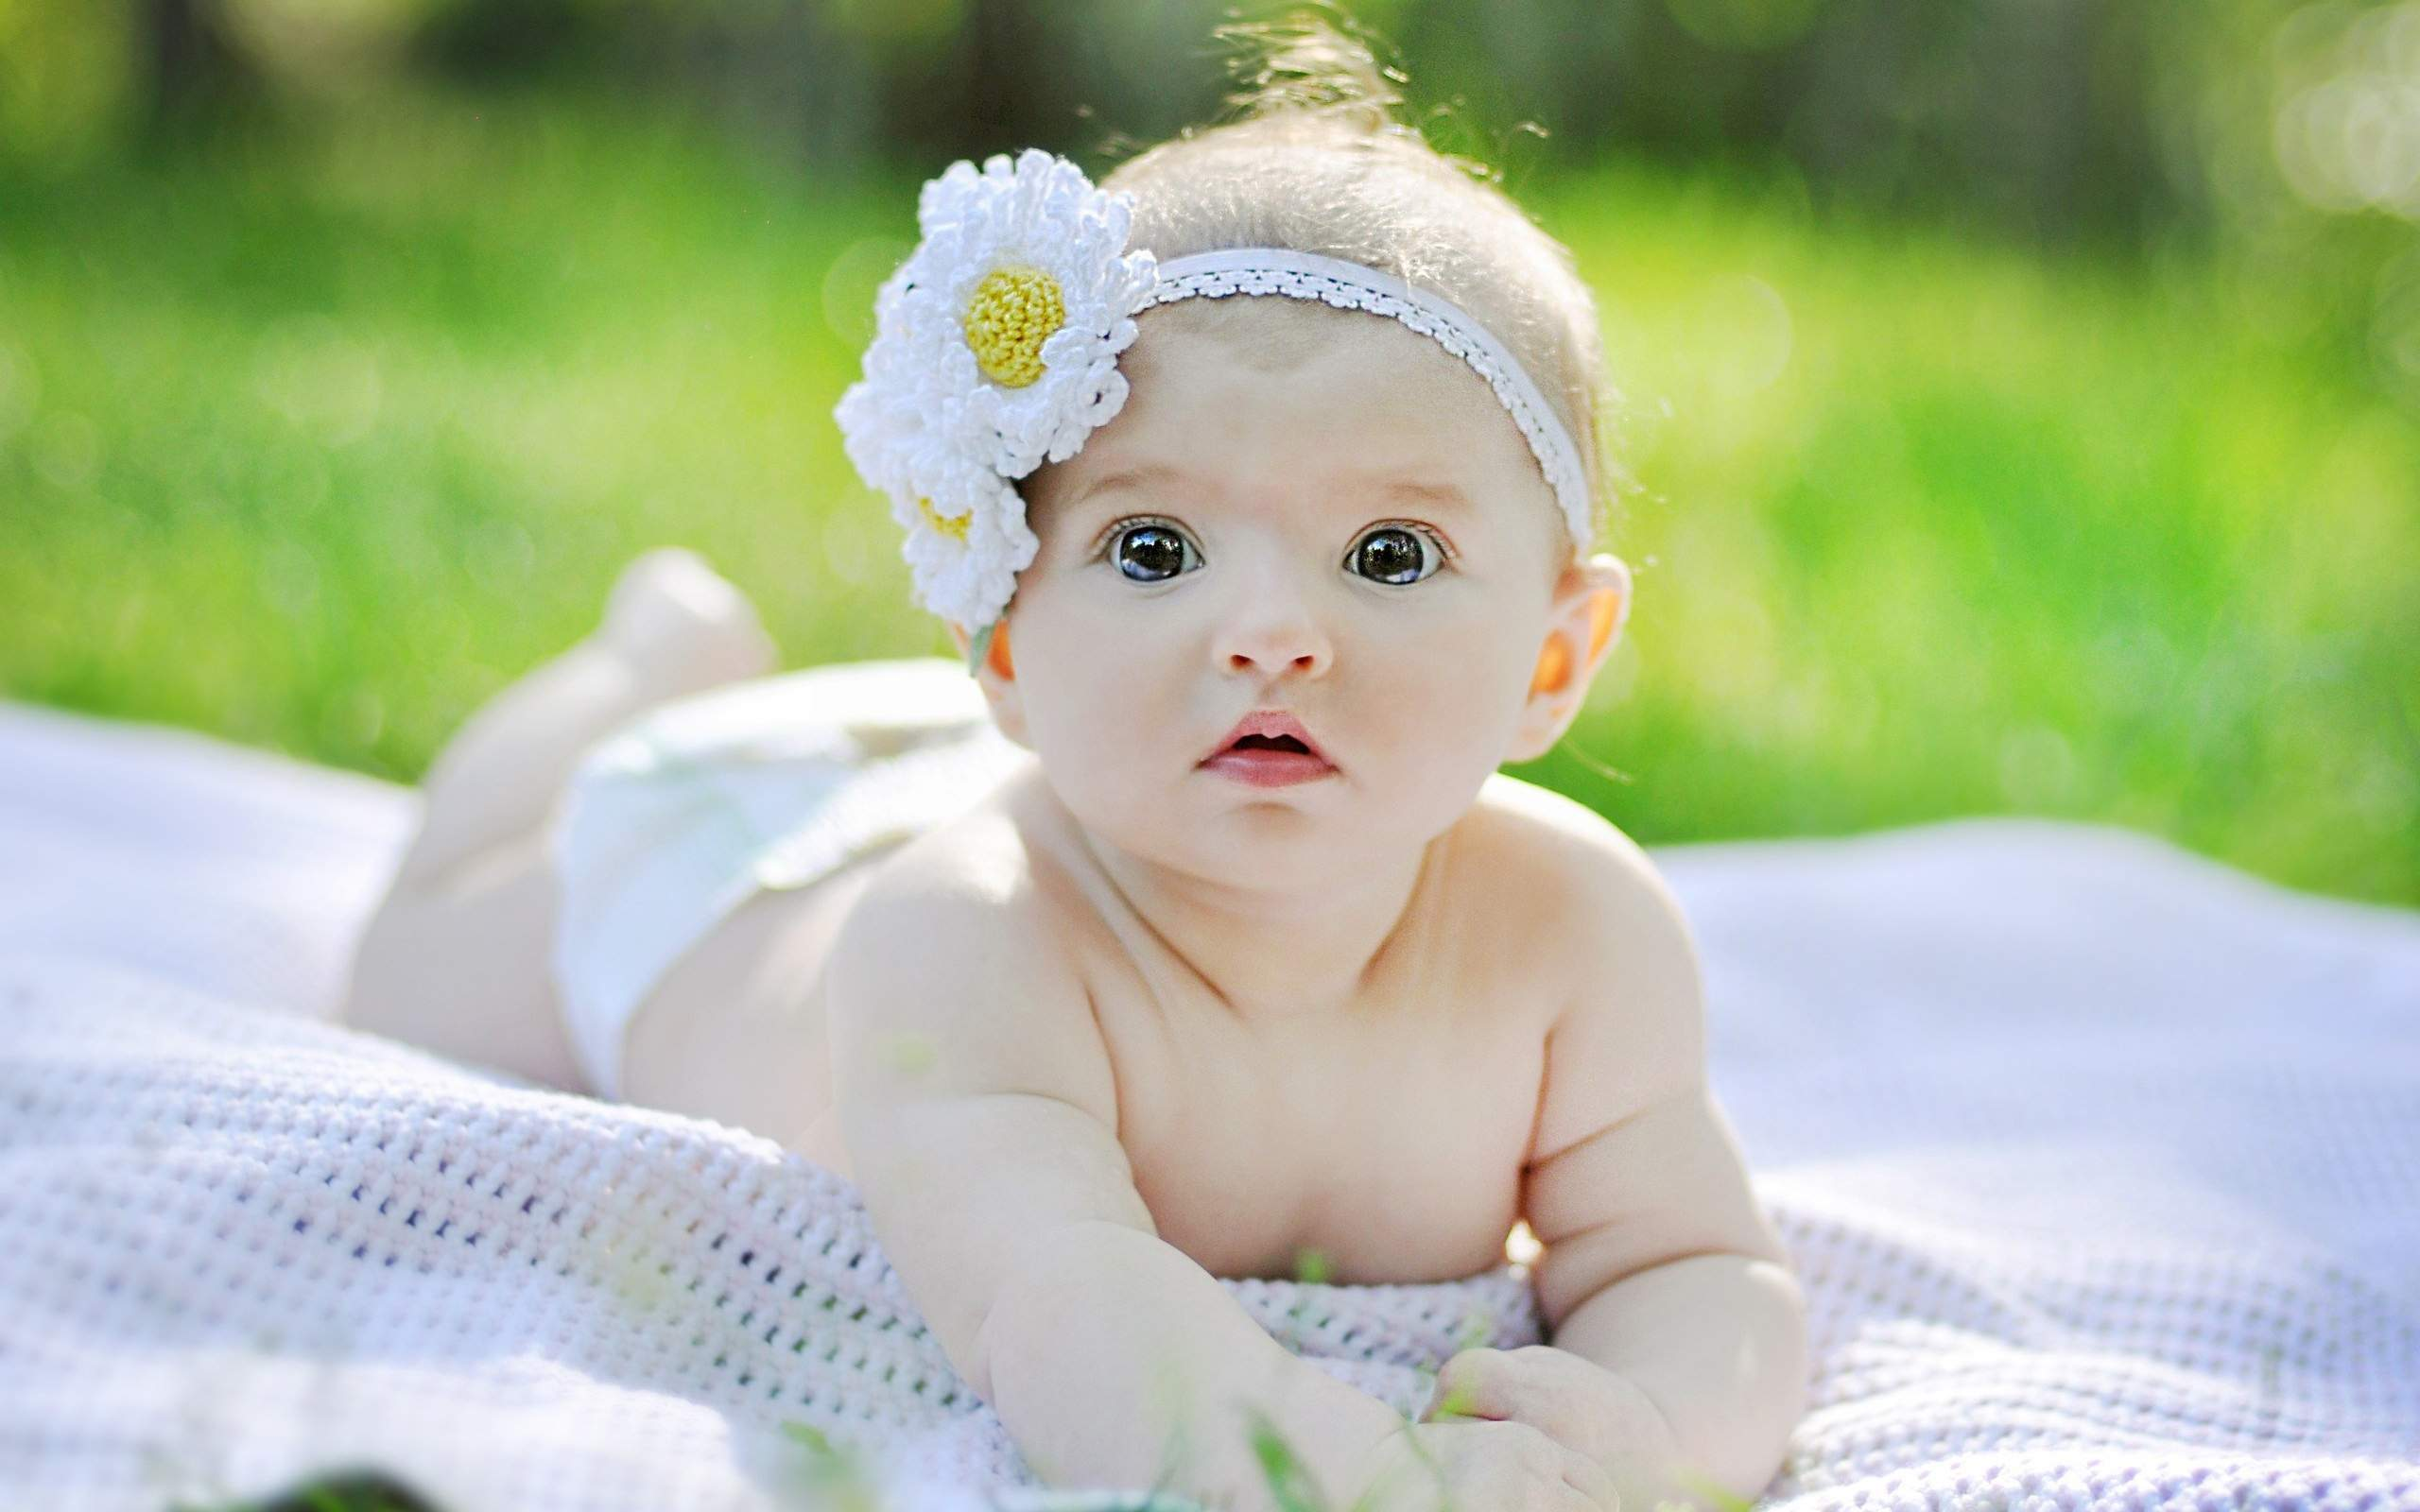 Cute Baby Girl Wallpaper – High Quality High Quality Pictures .